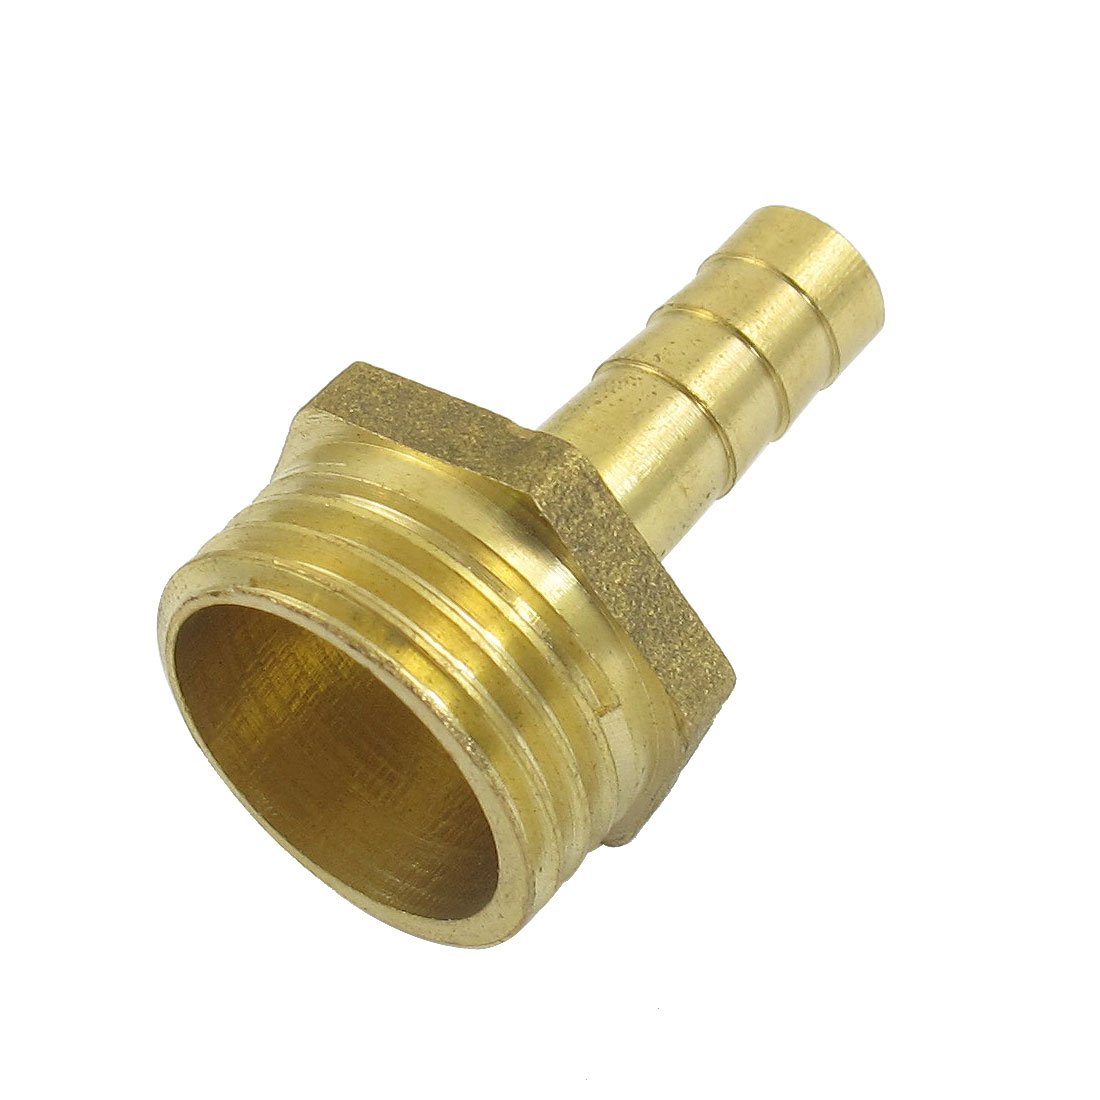 "Gold Tone Brass 8mm Fuel Gas Hose Barb 1/2"" Male Thread Coupling Fitting"